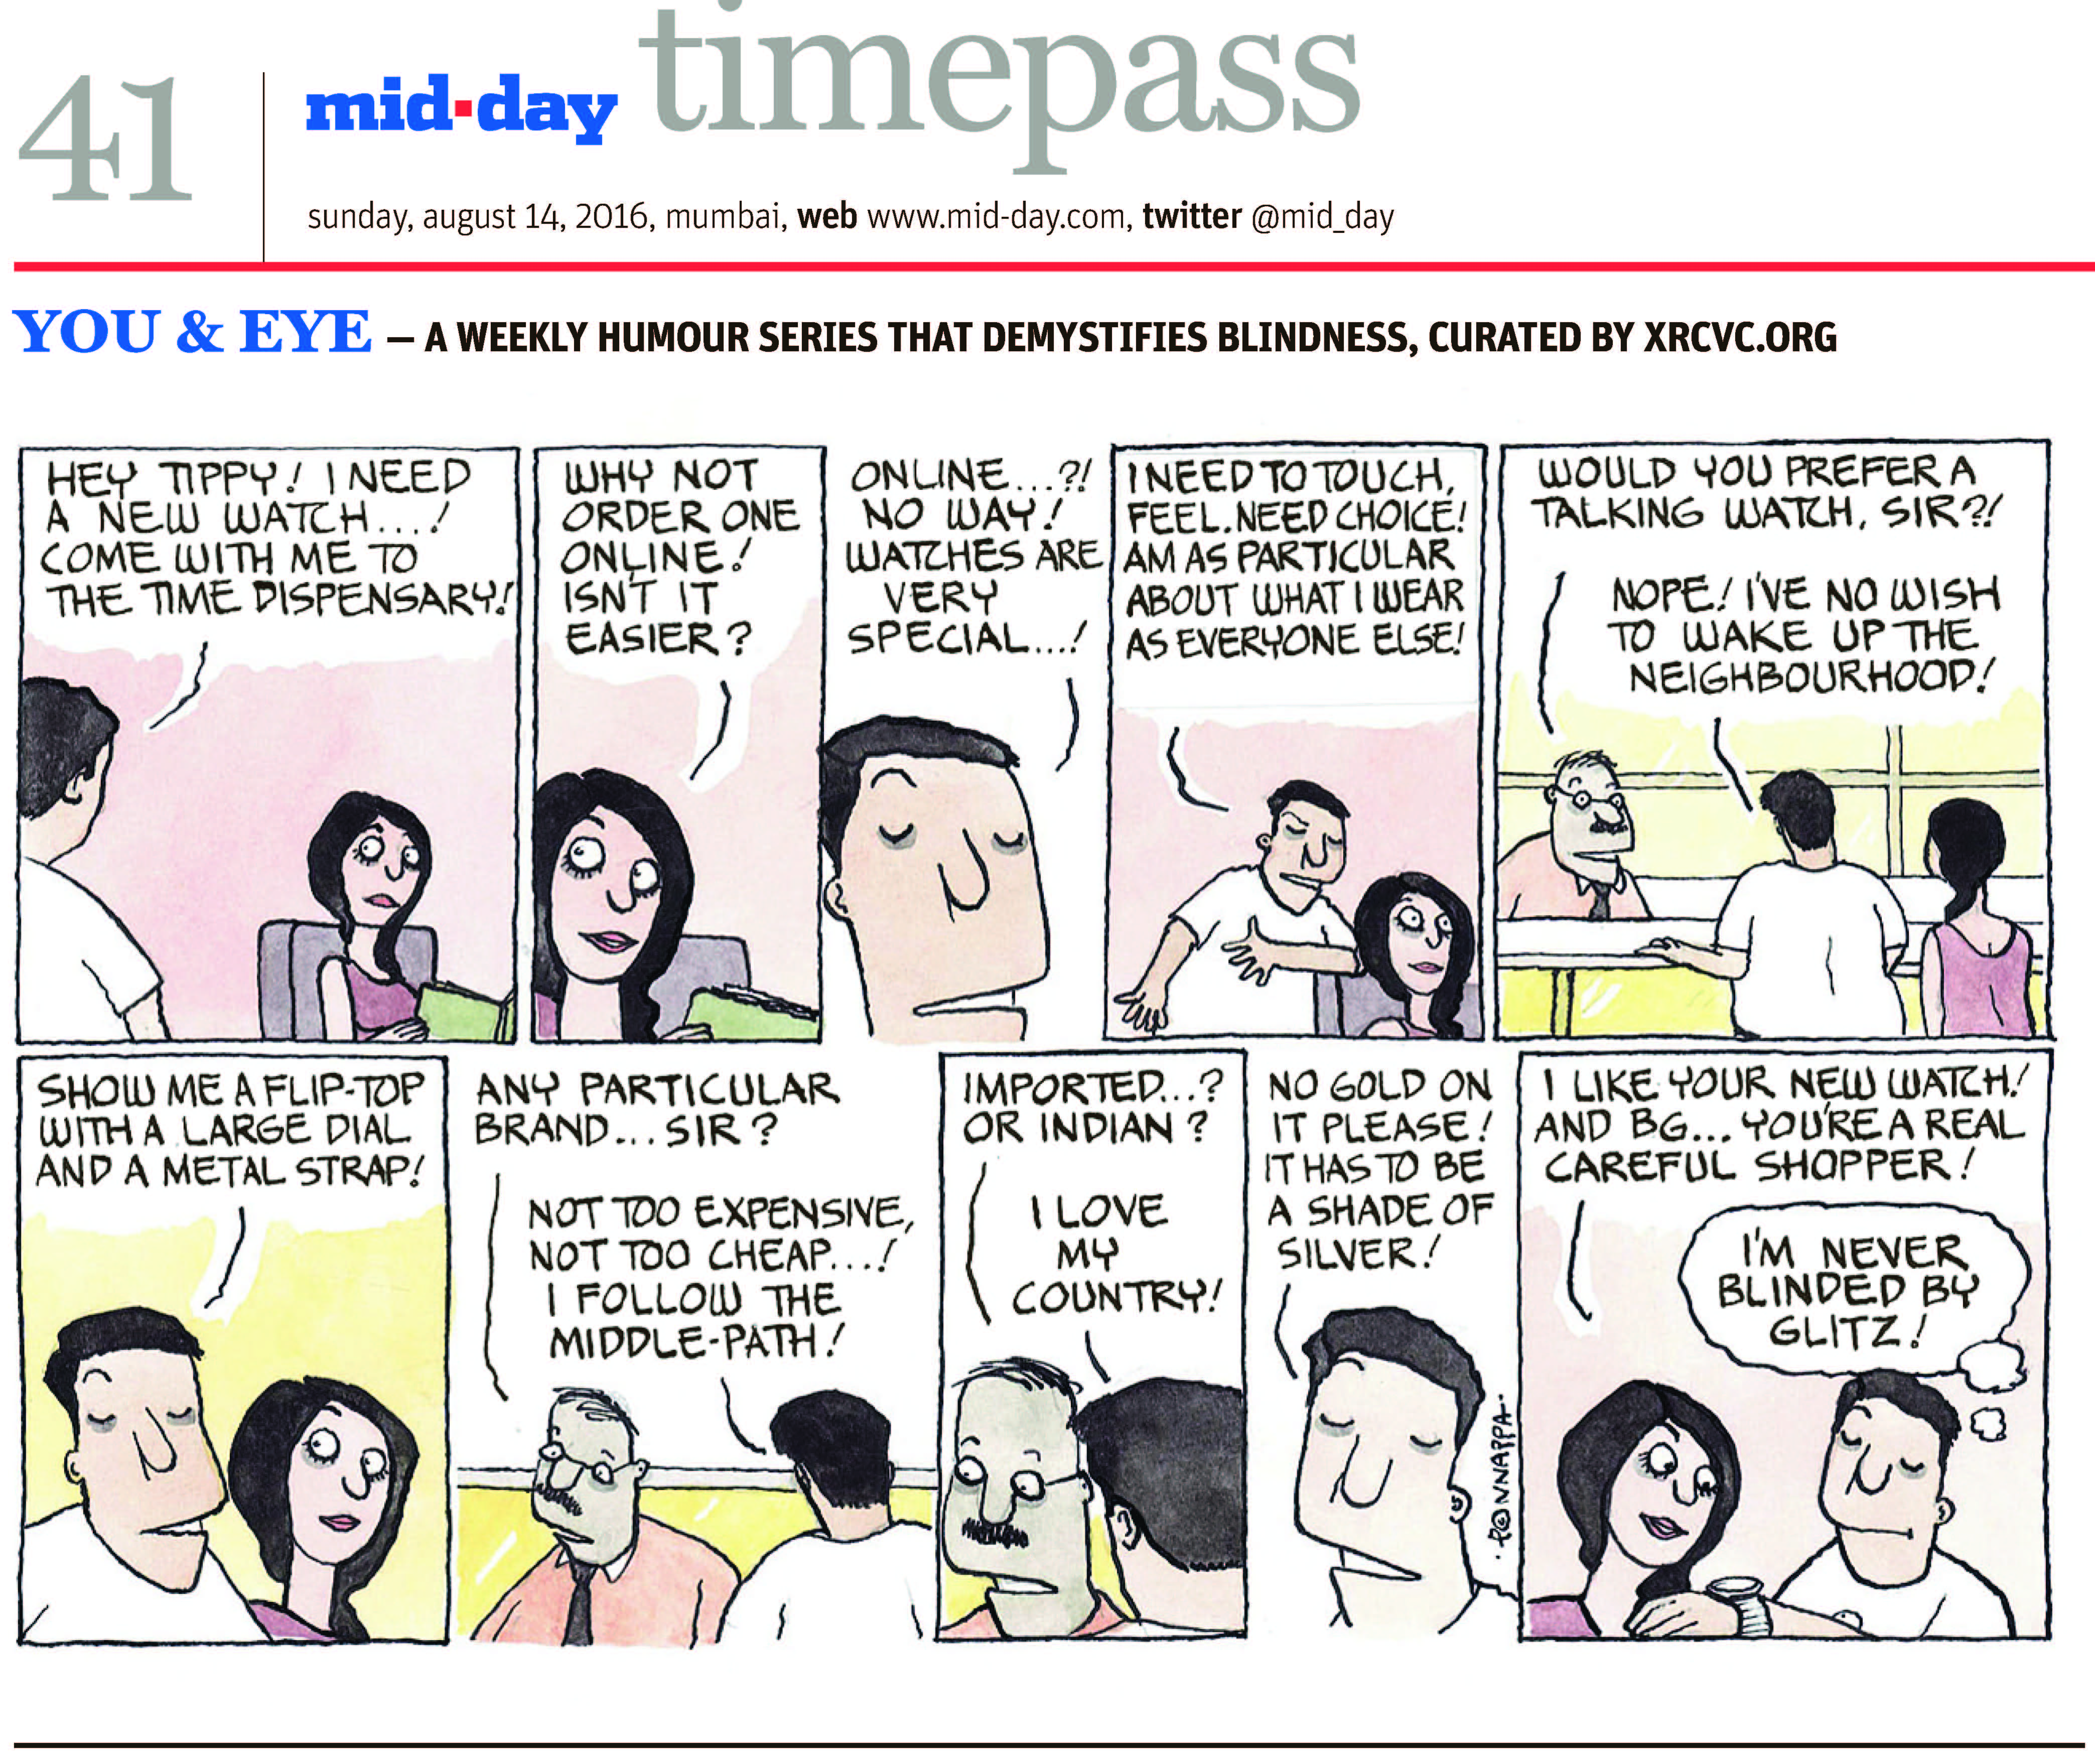 Page 41 mid-day timepass, sunday, august 14, 2016, mumbai, web: www.mid-day.com, twitter @mid_day YOU & EYE – A WEEKLY HUMOUR SERIES THAT DEMYSTIFIES BLINDNESS, CURATED BY XRCVC.ORG Image description: A cartoon strip with 10 frames… Frame 1: (The visually impaired man – BG – standing and facing his sighted friend – Tippy – who is seated on a chair with a book in her hand) BG: Hey Tippy! I need a new watch! Come with me to the time dispensary! Frame 2: (A close-up of Tippy who seems to be speaking persuasively with a smile and eyebrows raised) Tippy: Why not order one online! Isn't it easier? Frame 3: (A close-up of BG as he speaks) BG: Online… ?! No way! Watches are very special…! Frame 4: (BG continues talking while resting his left elbow on the backrest of Tippy's chair) BG: I need to touch, feel. I need choice! I'm as particular of what I wear as everyone else! Frame 5: (A man in spectacles – shopkeeper – standing behind a counter speaking to BG and Tippy who are standing across him. BG is resting his left hand on the counter.) Shopkeeper: Would you prefer a talking watch, Sir?! BG: Nope! I've no wish to wake up the neighbourhood! Frame 6: (A close-up of BG and Tippy) BG: Show me a flip-top with a large dial and a metal strap! Frame 7: (The shopkeeper and BG speaking) Shopkeeper: Any particular brand… Sir?